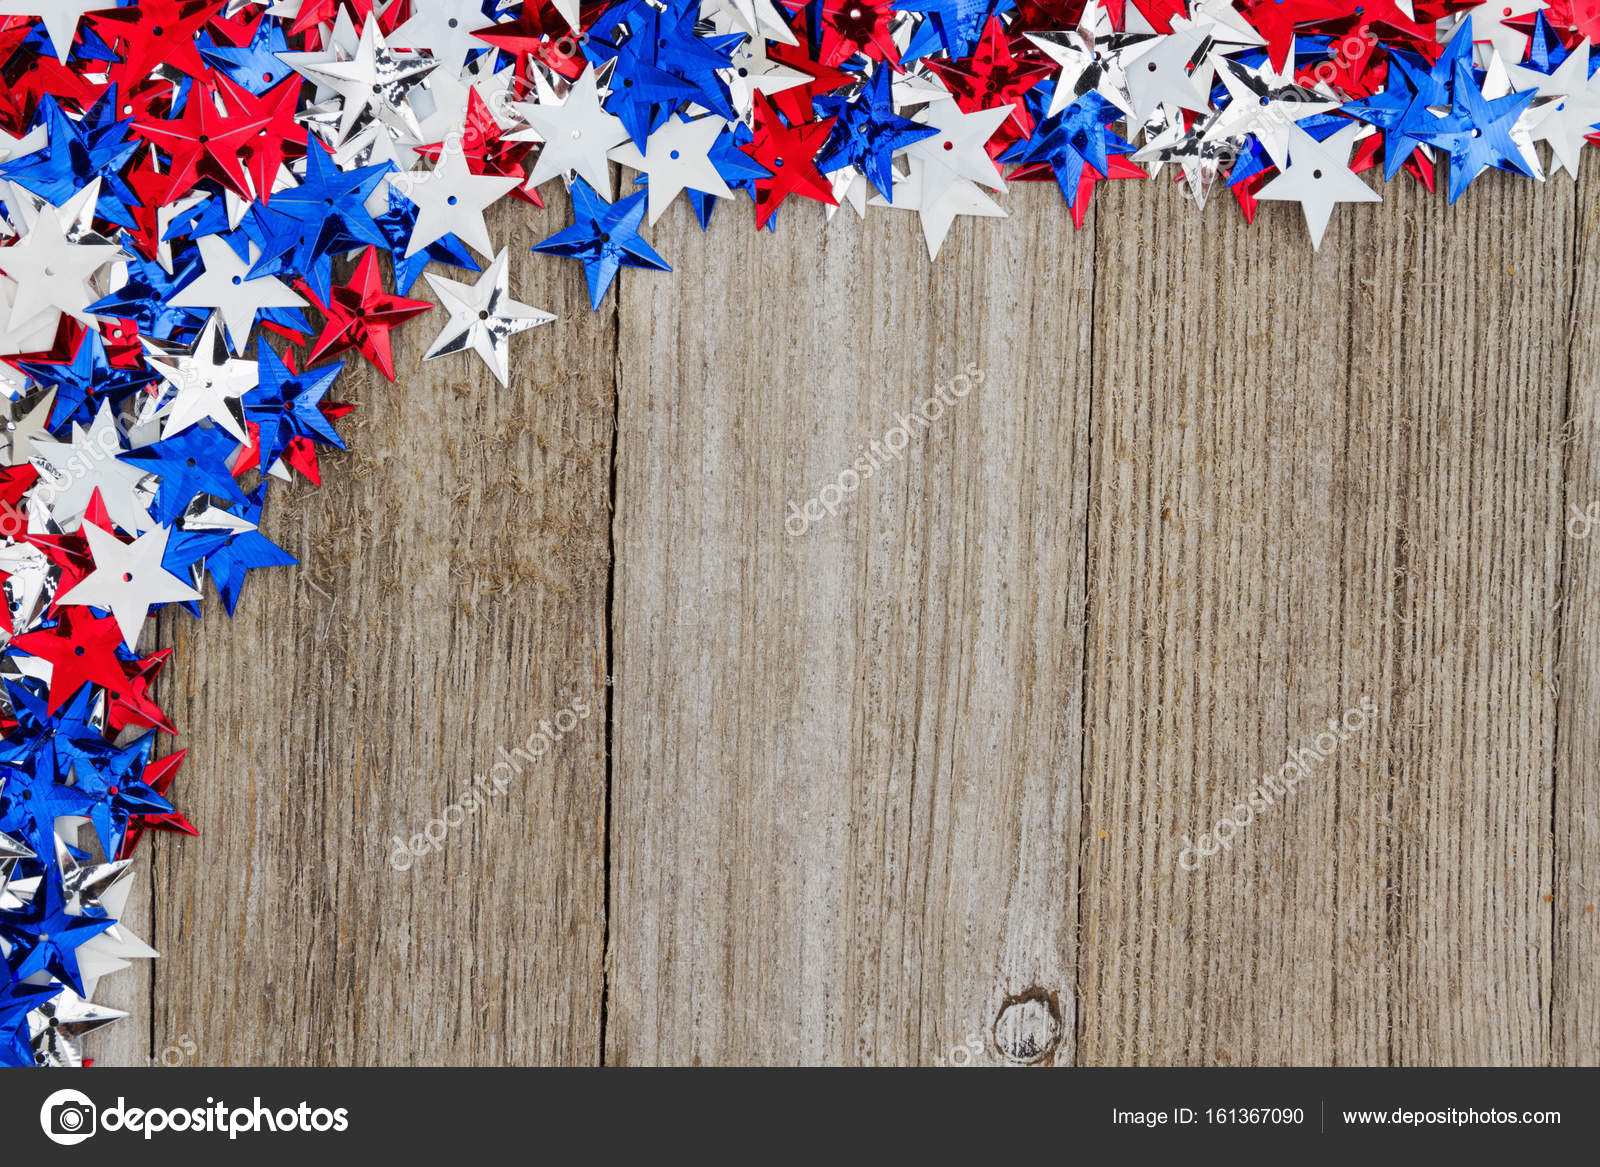 usa red white and blue stars on weather wood background stock photo c karenr 161367090 depositphotos